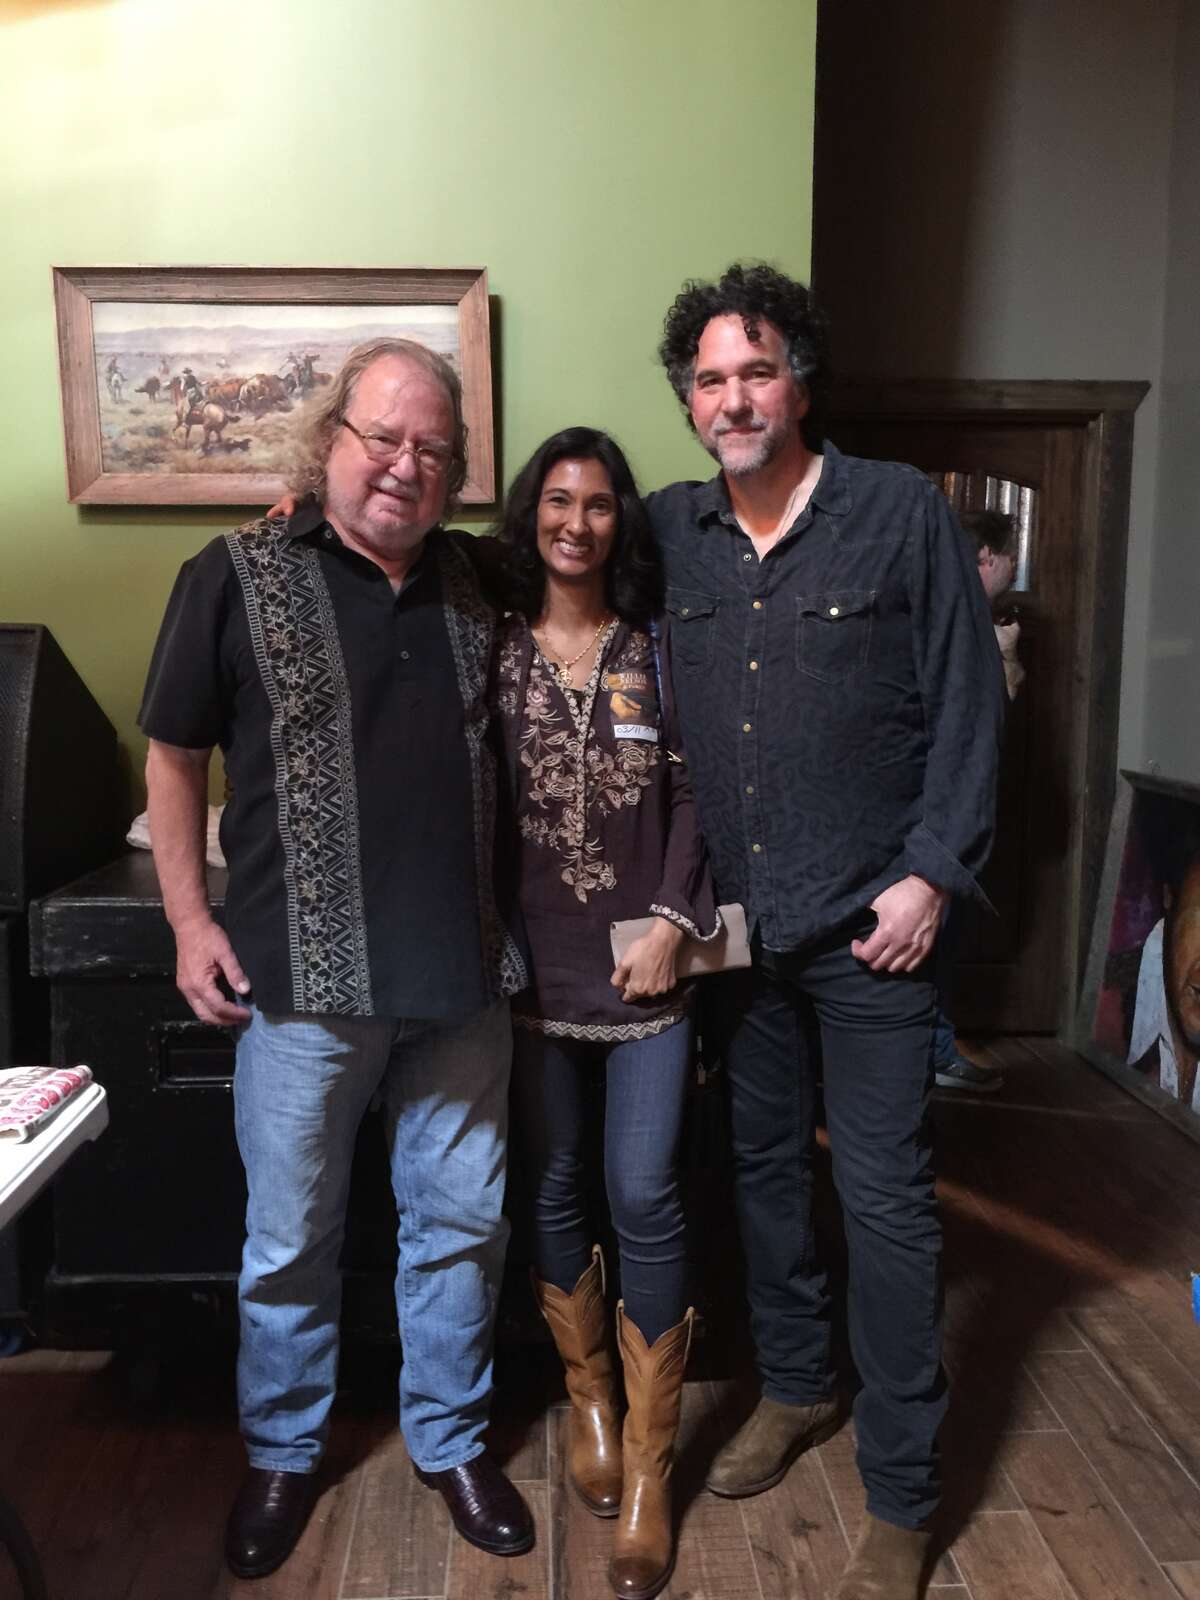 Immunologist James Allison (left) and wife, Dr. Padmanee Sharma, with Mickey Raphael, Willie Nelson's harmonica player.